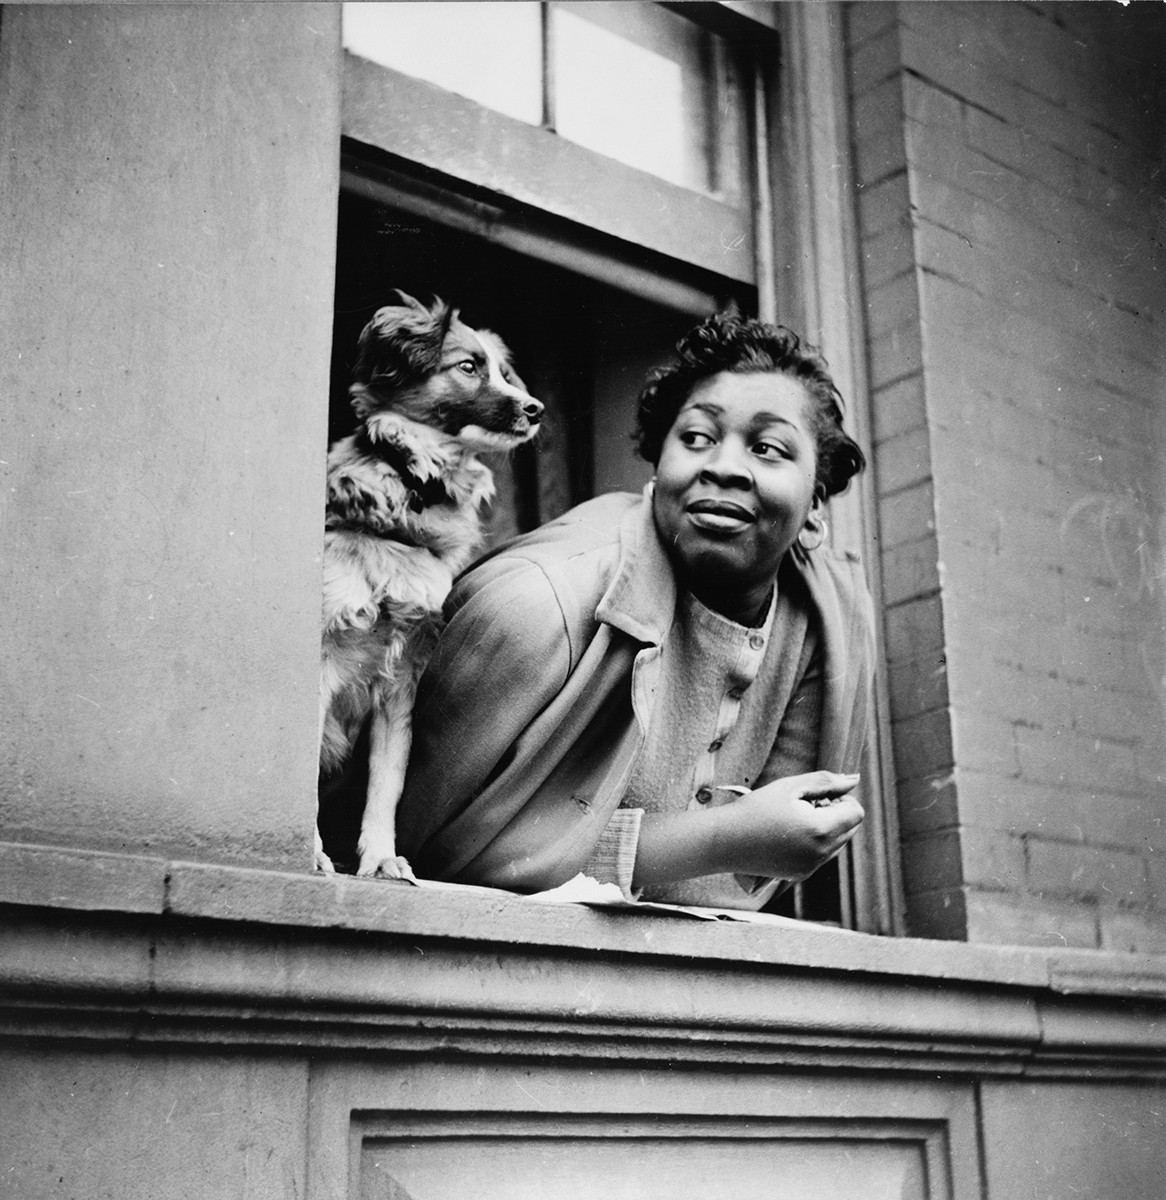 Gordon Parks, New York, New York. A woman and her dog in the Harlem section, 1943